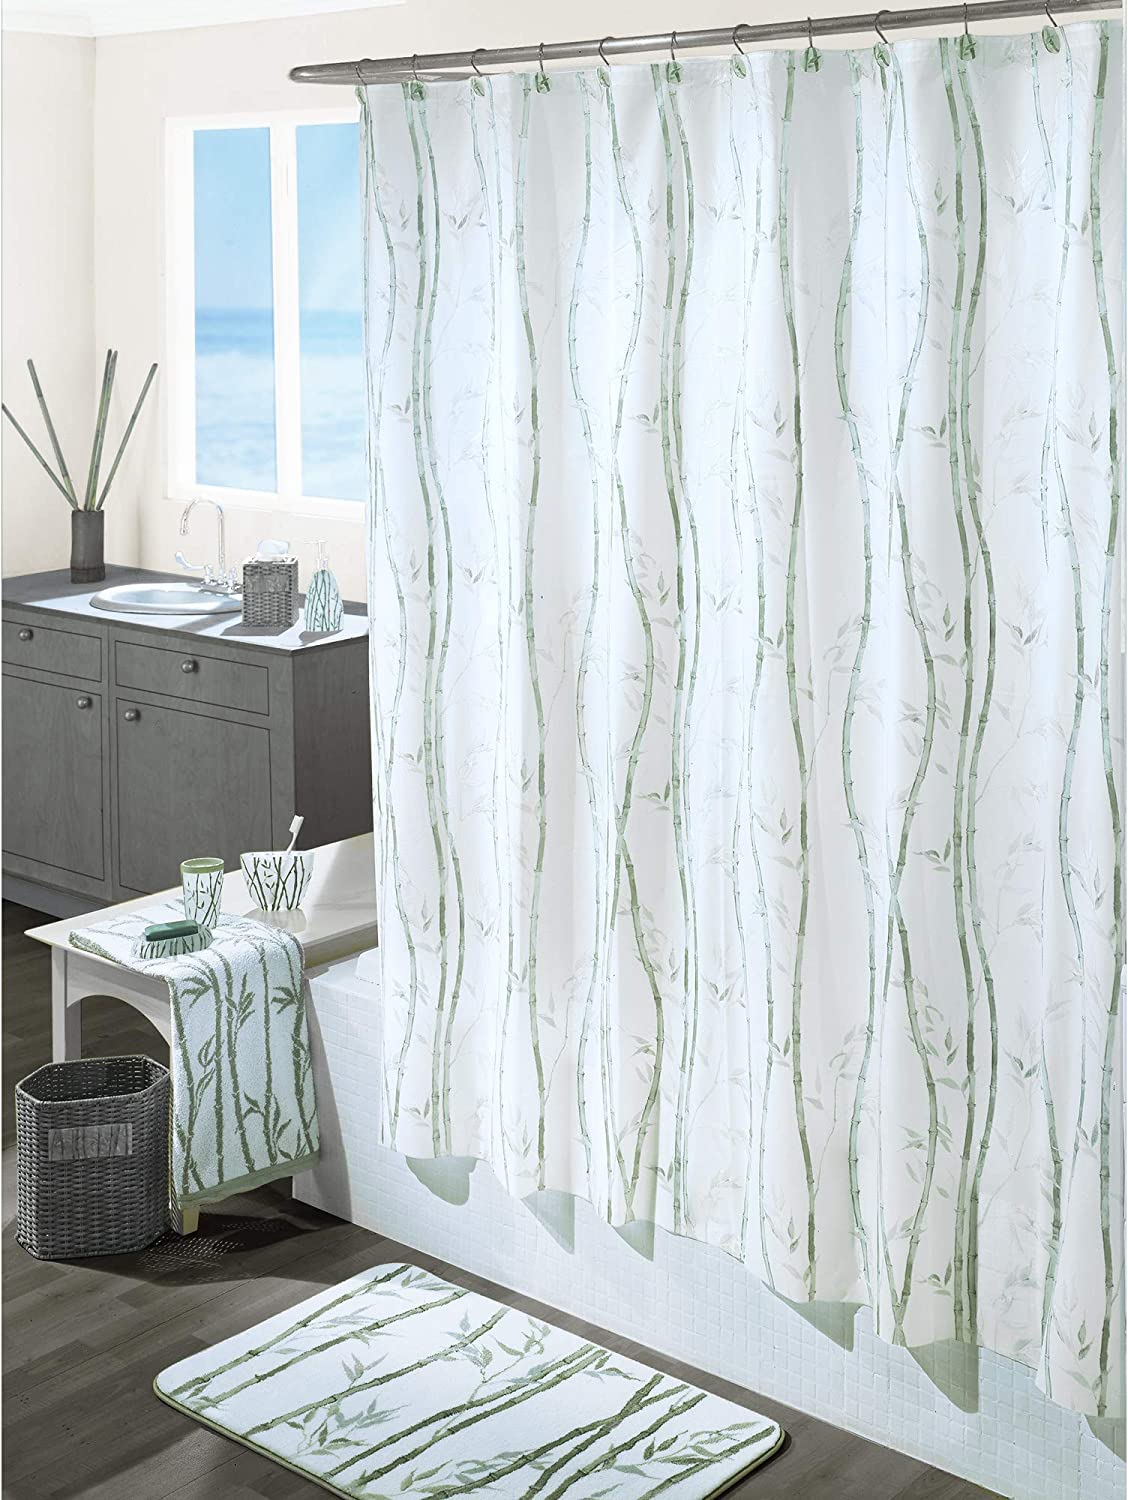 Excell Home Fashions 70-by-72-Inch Vinyl Shower Curtain, Green Bamboo